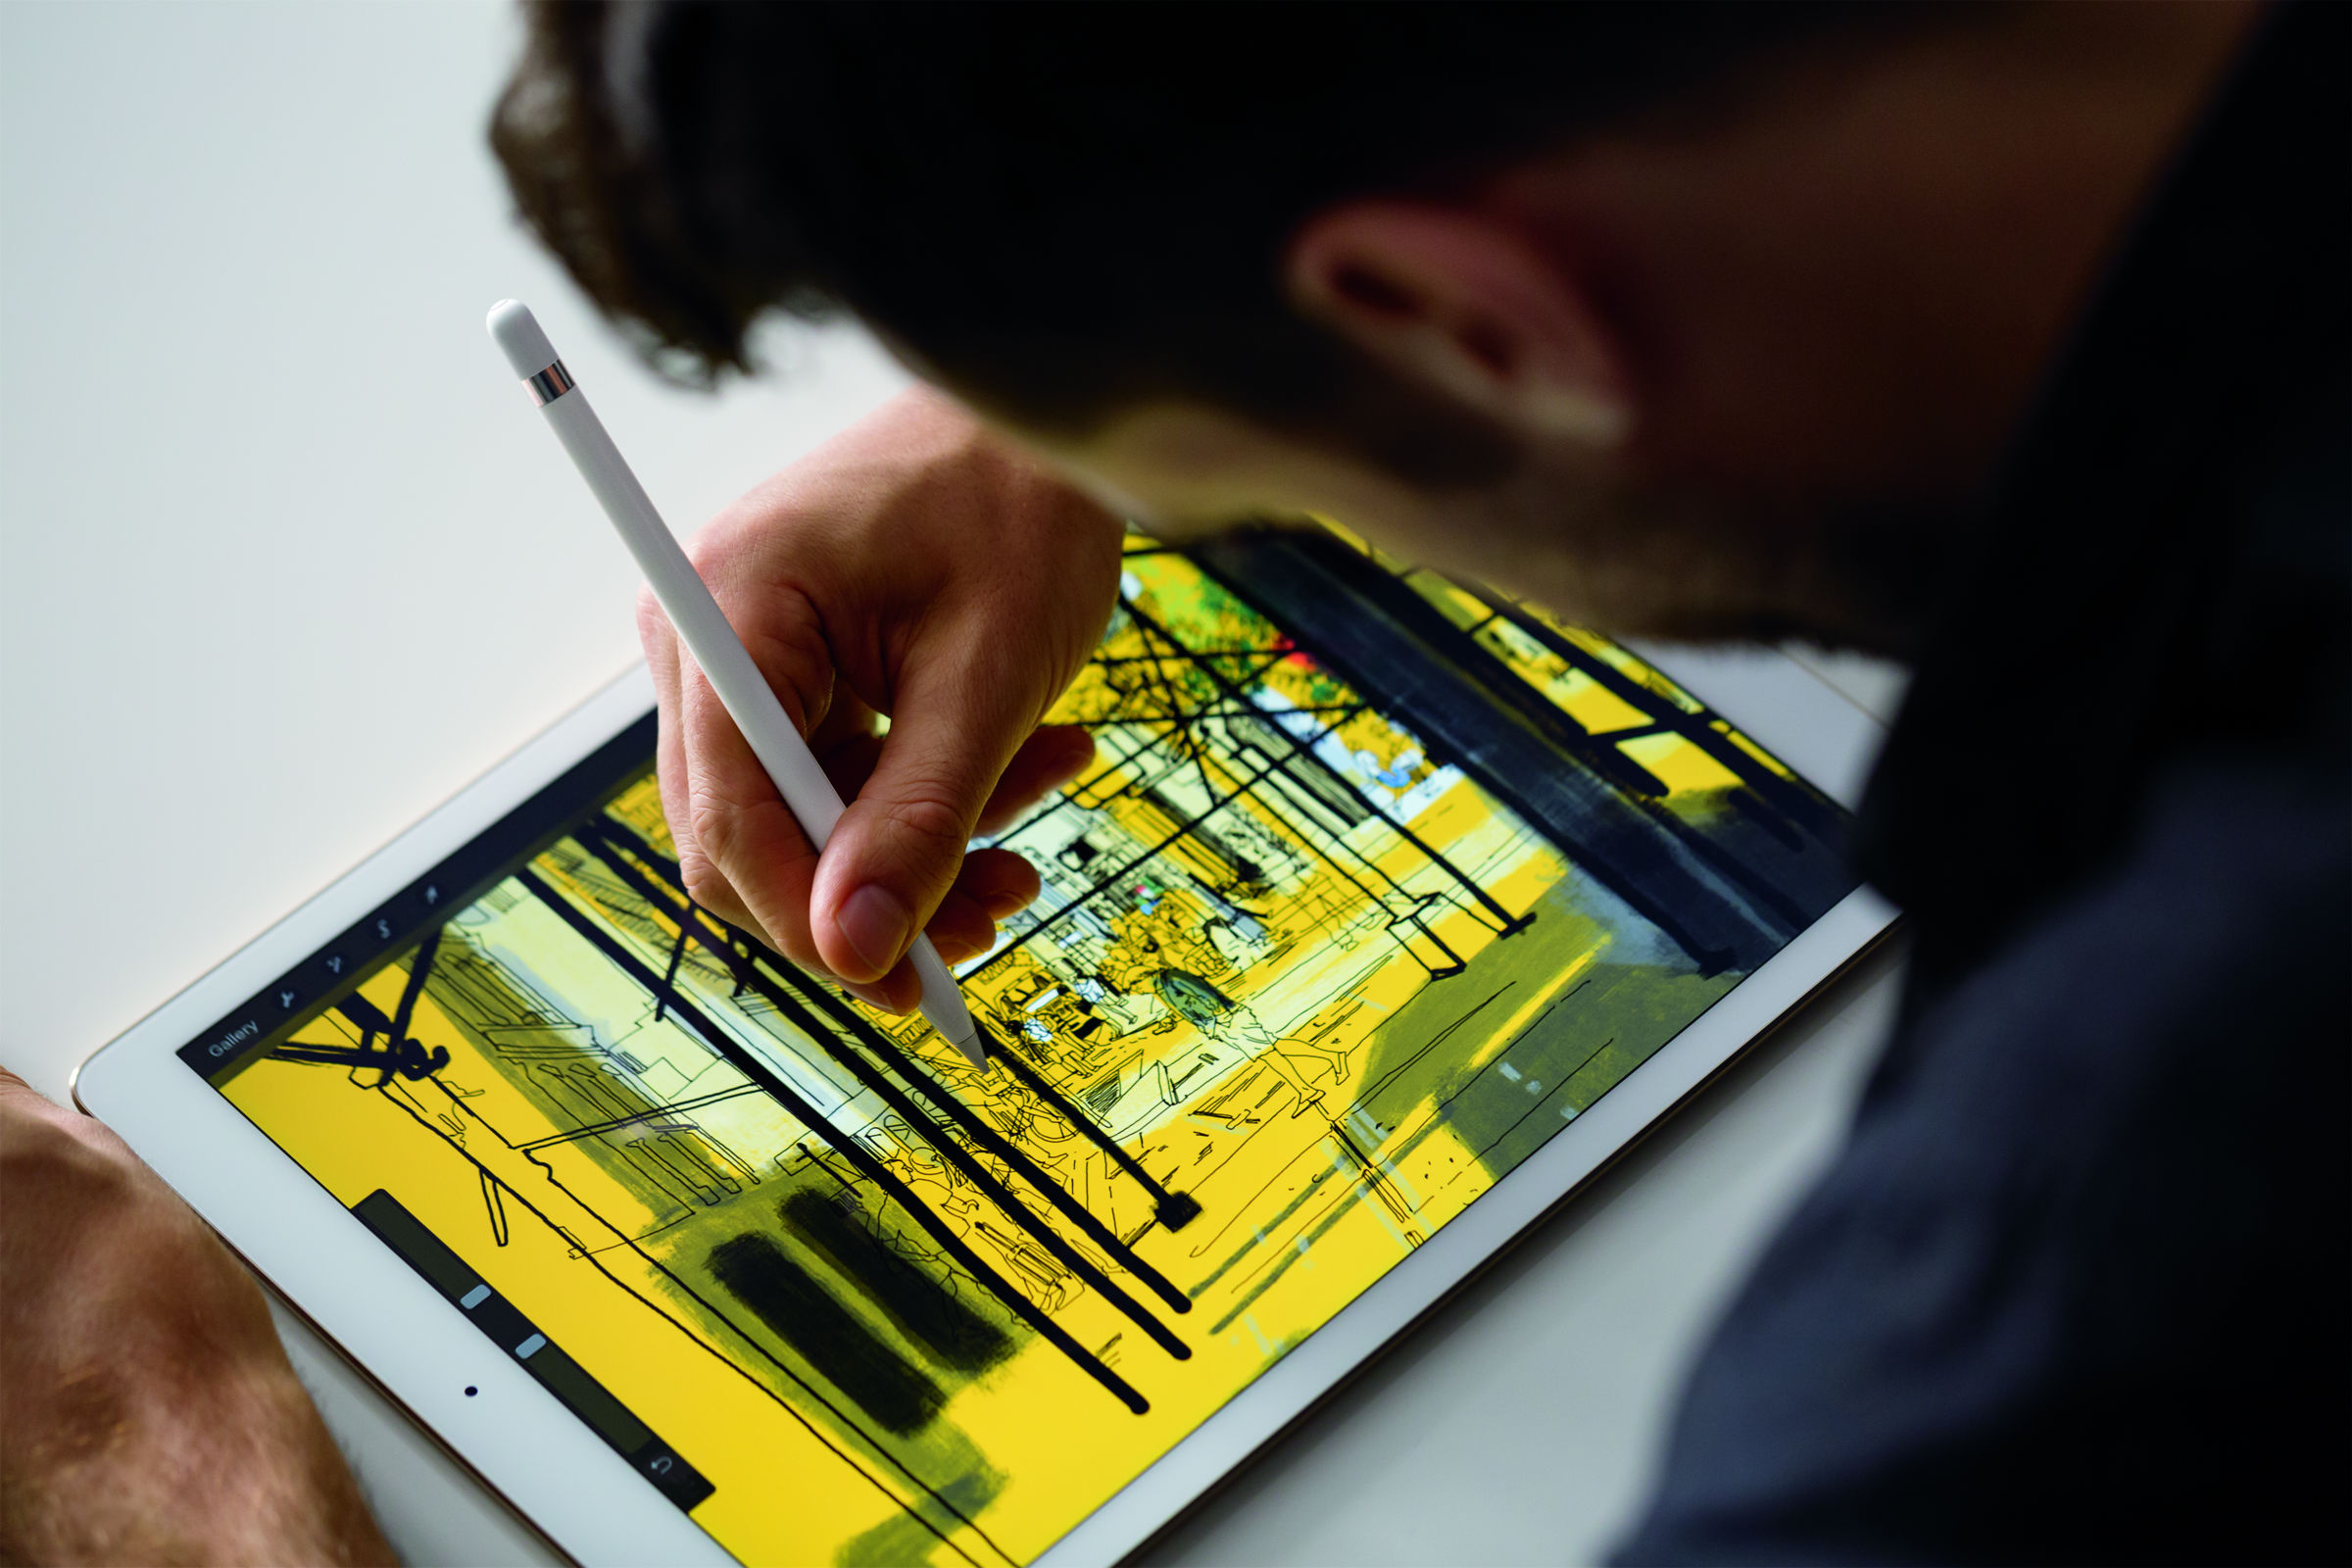 adobe photoshop sketch review with ipad pro and apple pencil gearopen com